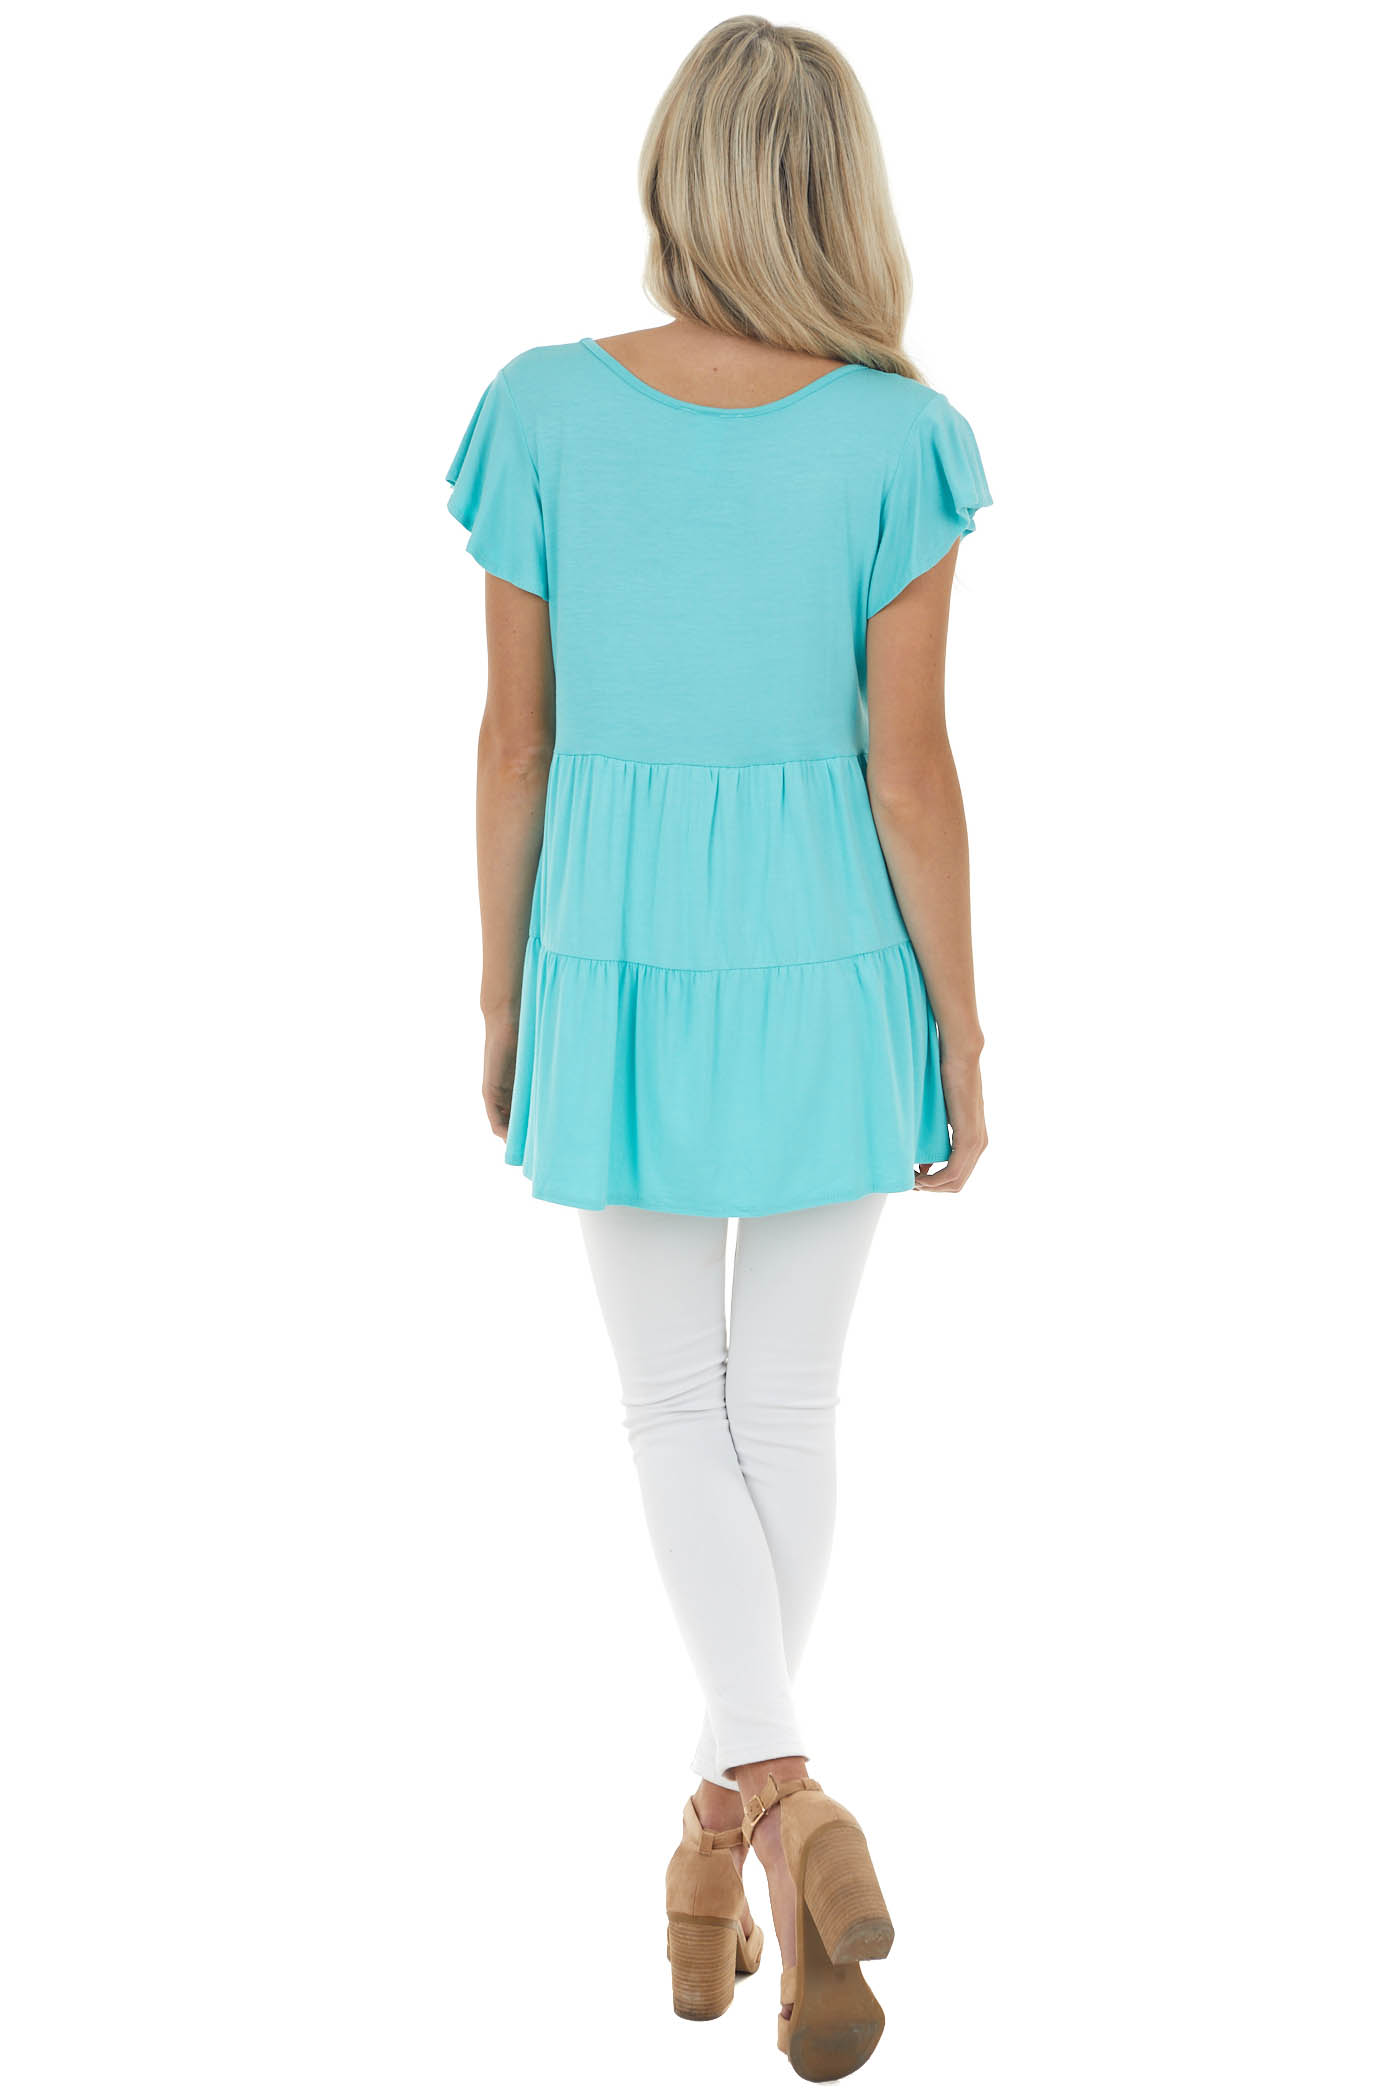 Aqua Blue Babydoll Tiered Knit Top with Flutter Sleeves